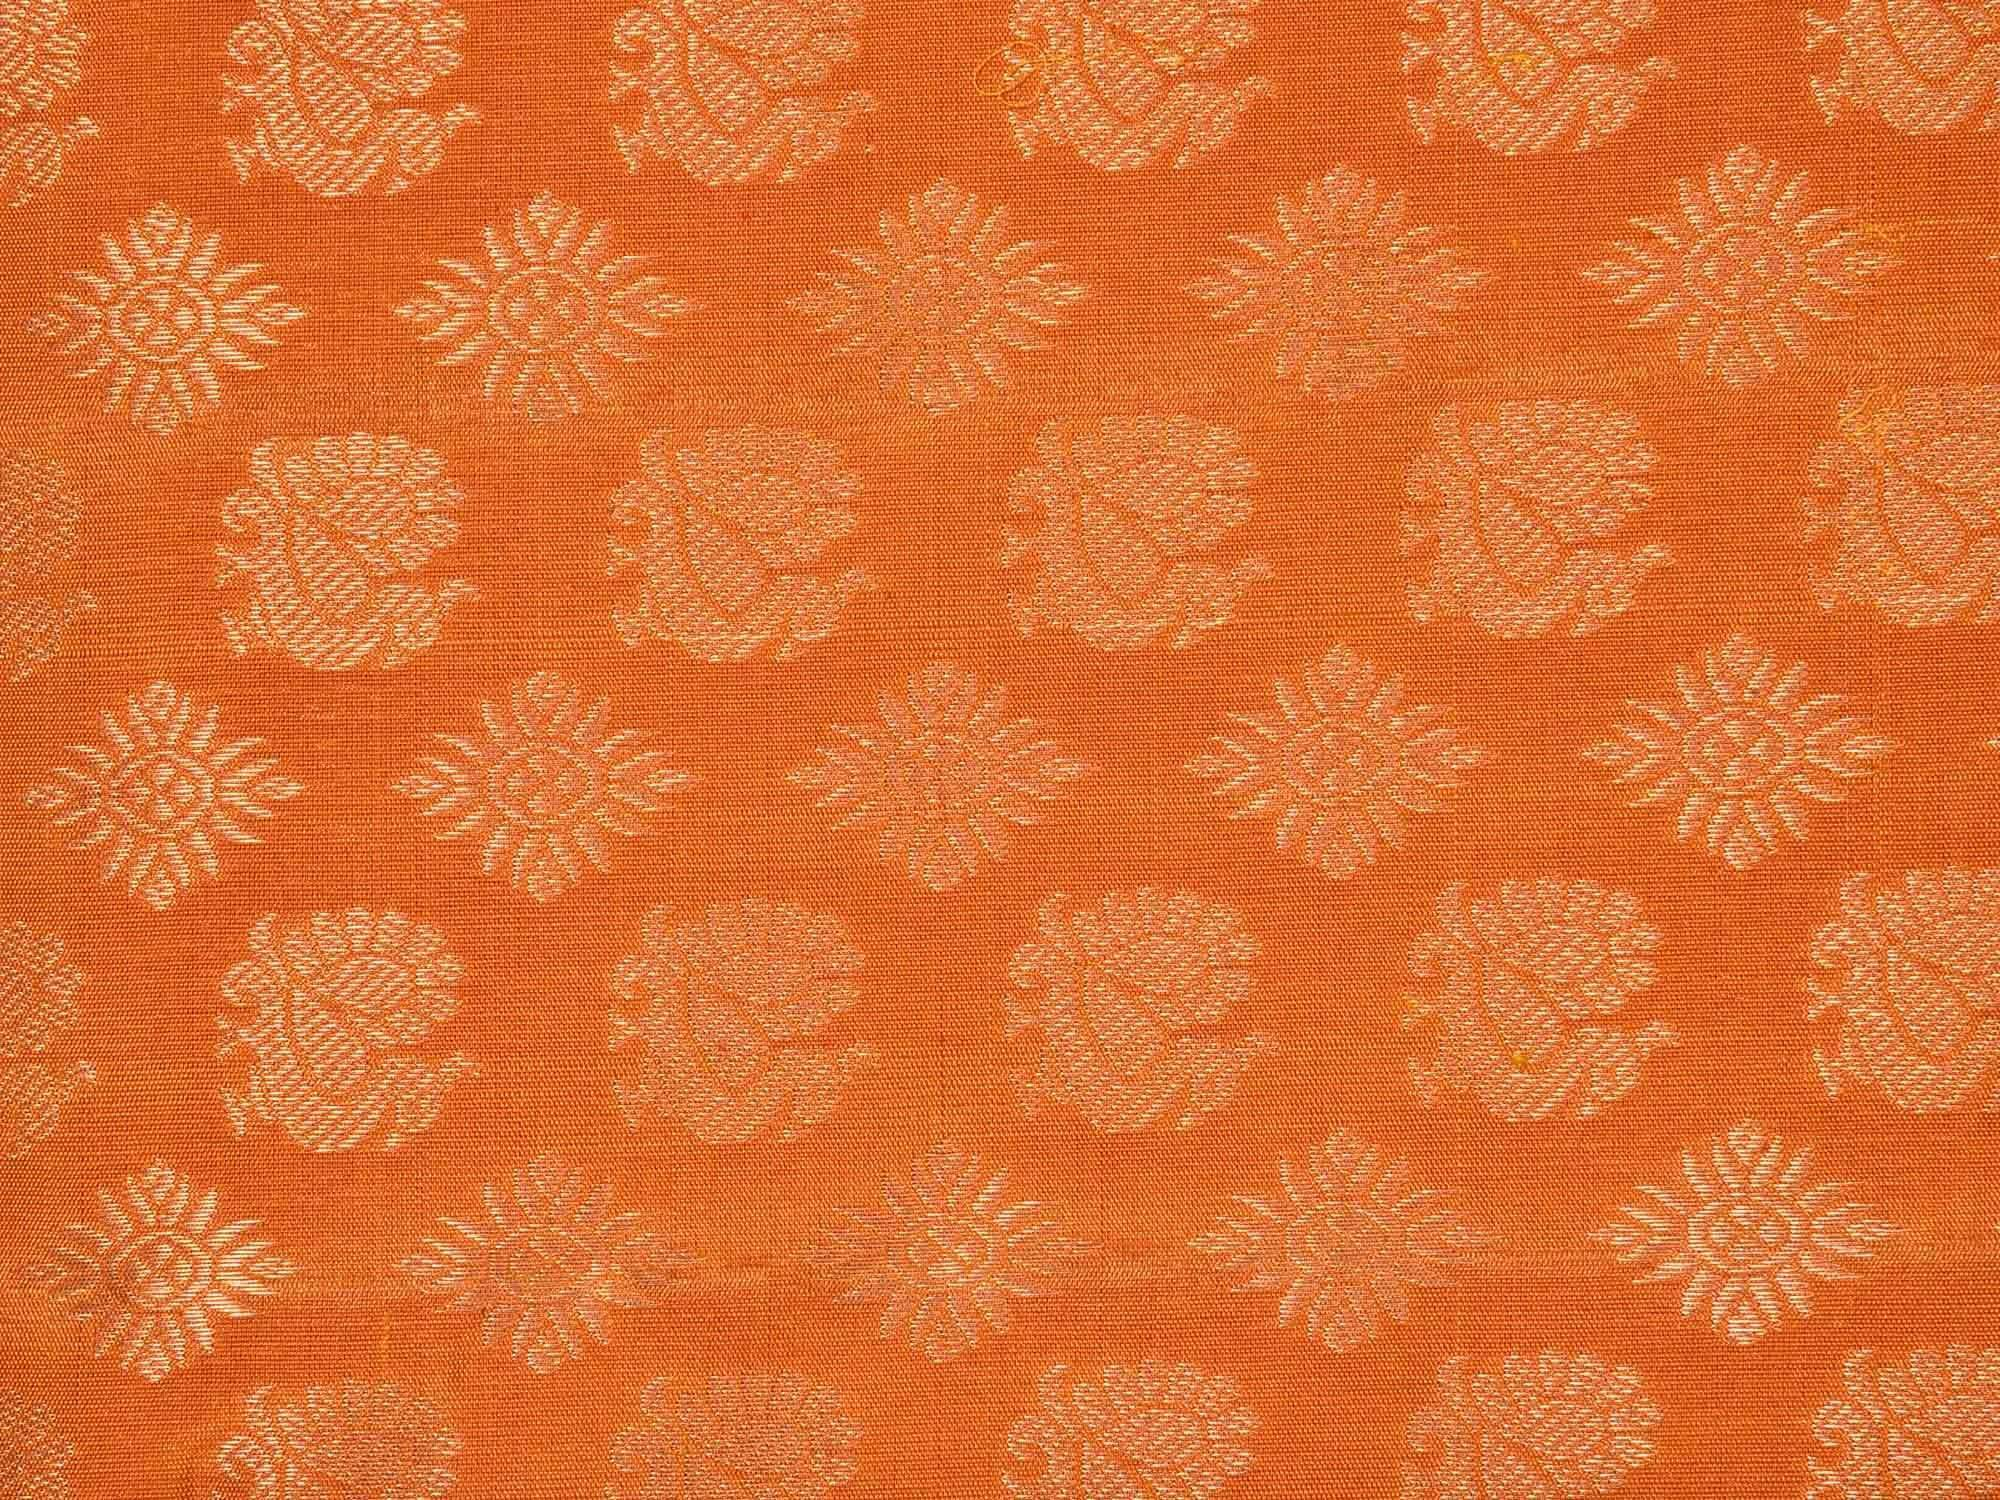 Orange Kanchipuram Silk Handloom Saree with All Over and Border Design K0410